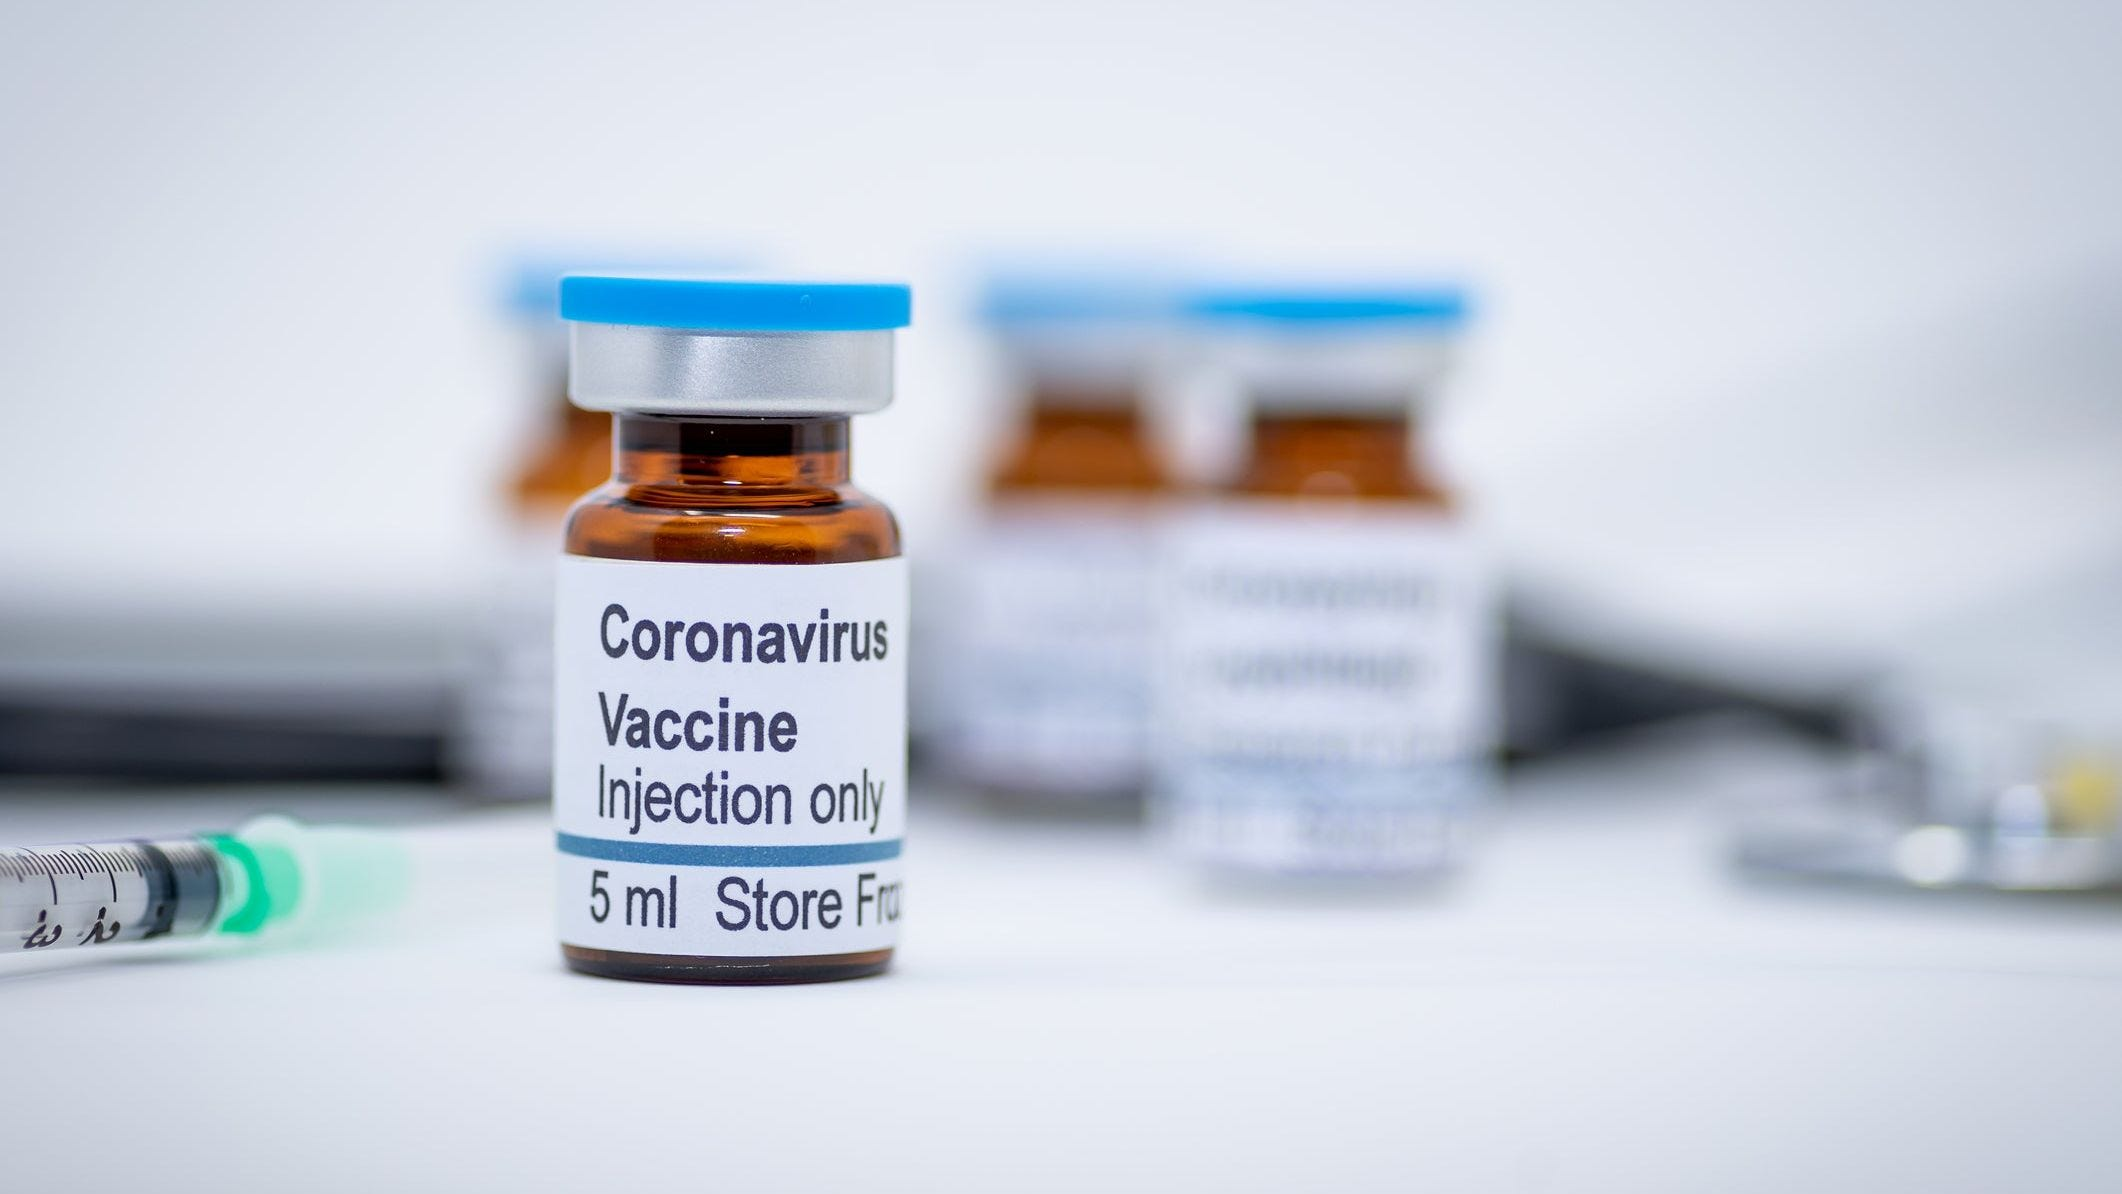 US intends to convey COVID-19 immunization following approval